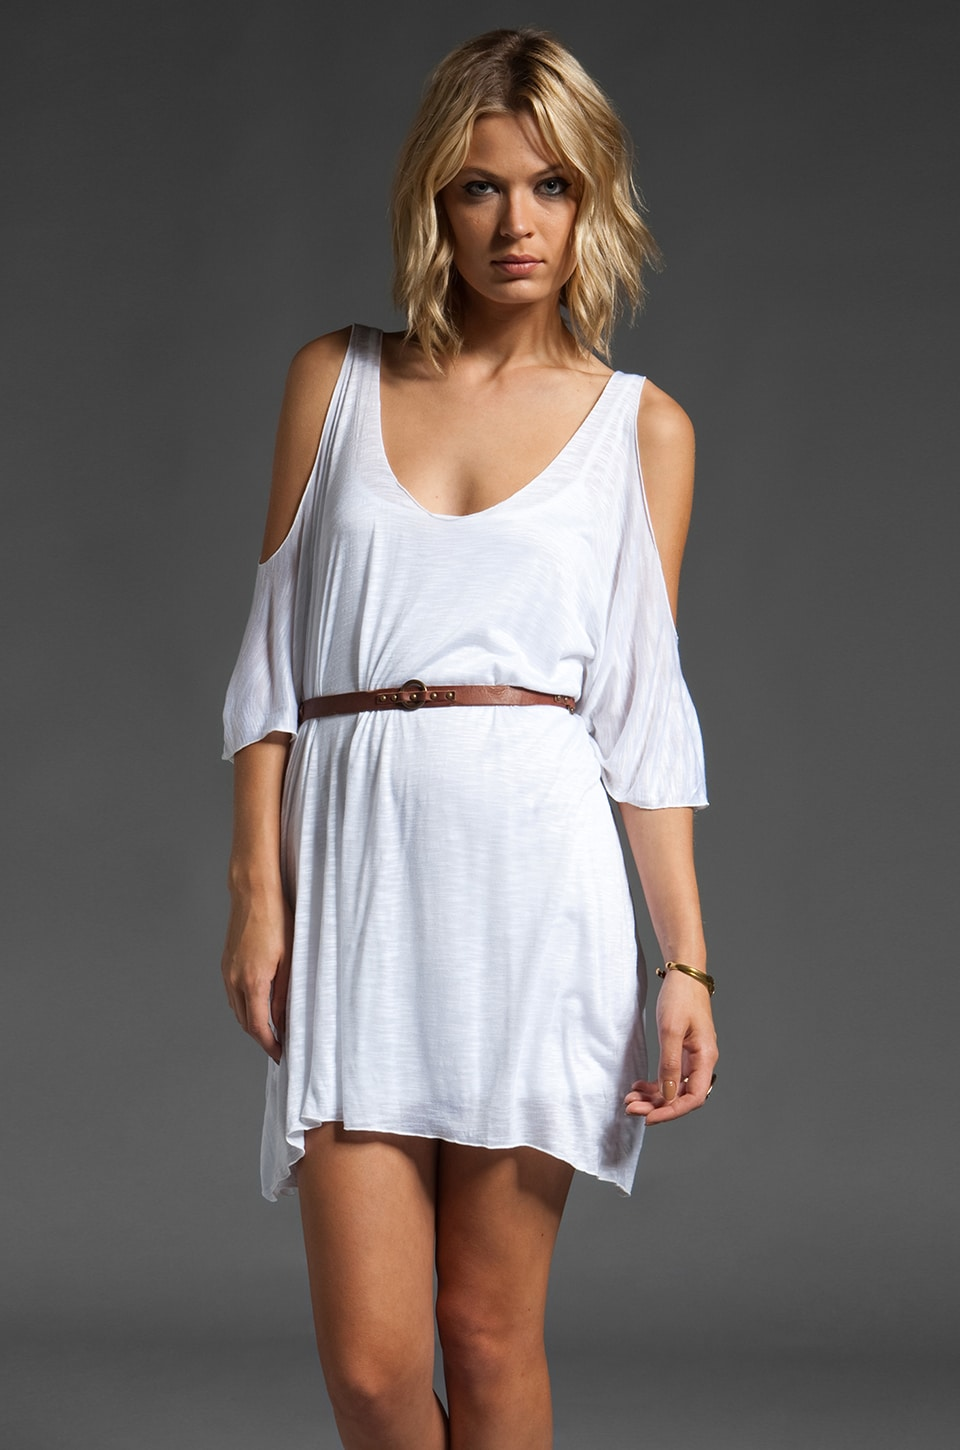 Indah Yang Cold Shoulder Tunic in White